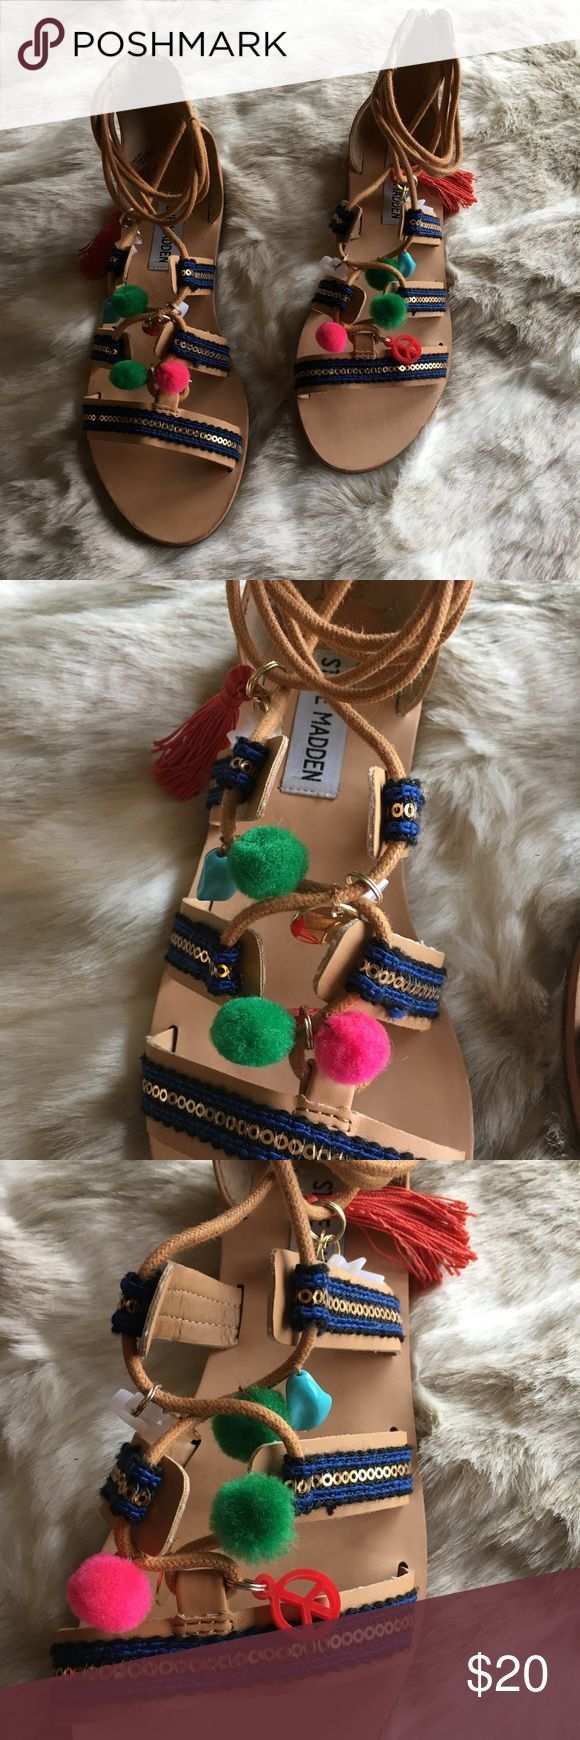 Steve Madden Kids 'Jcailin' Sandal in Natural EUC - Cute one of a kind colorful sandals! manmade upper, 1/2 inch heel.  On-trend pom, sequin, and tassle details. Back zip closure for easy on and off. Man-made lining and outsole. Steve Madden Shoes Sandals & Flip Flops